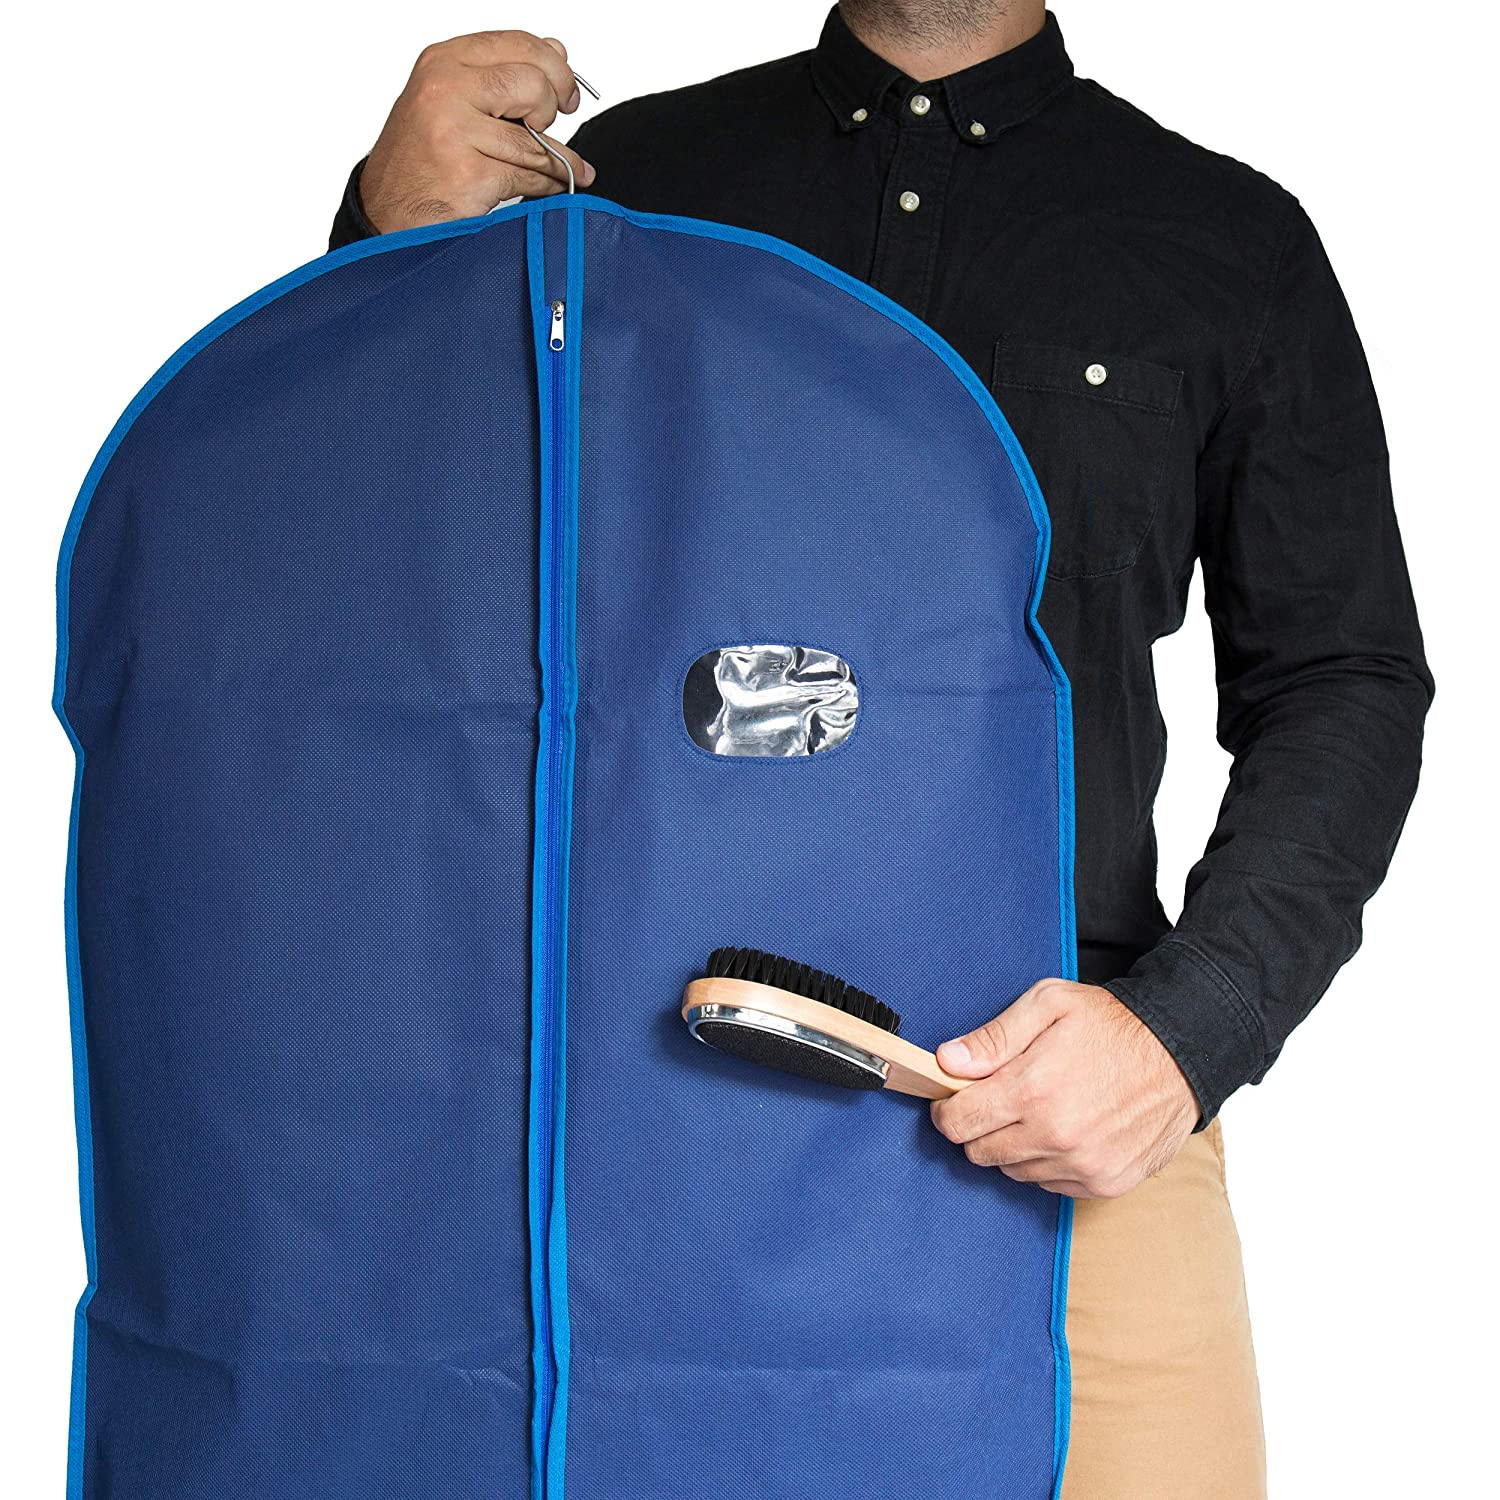 Navy /& Blue Finish Garment Bags by Home Zone 4 Pack of Breathable Garment Suit Bag Clothes Covers Medium Size ZH-BGC-BLU-K4 Protect Garments /& Suits Ideal for Mens Travel /& Clothing Protection